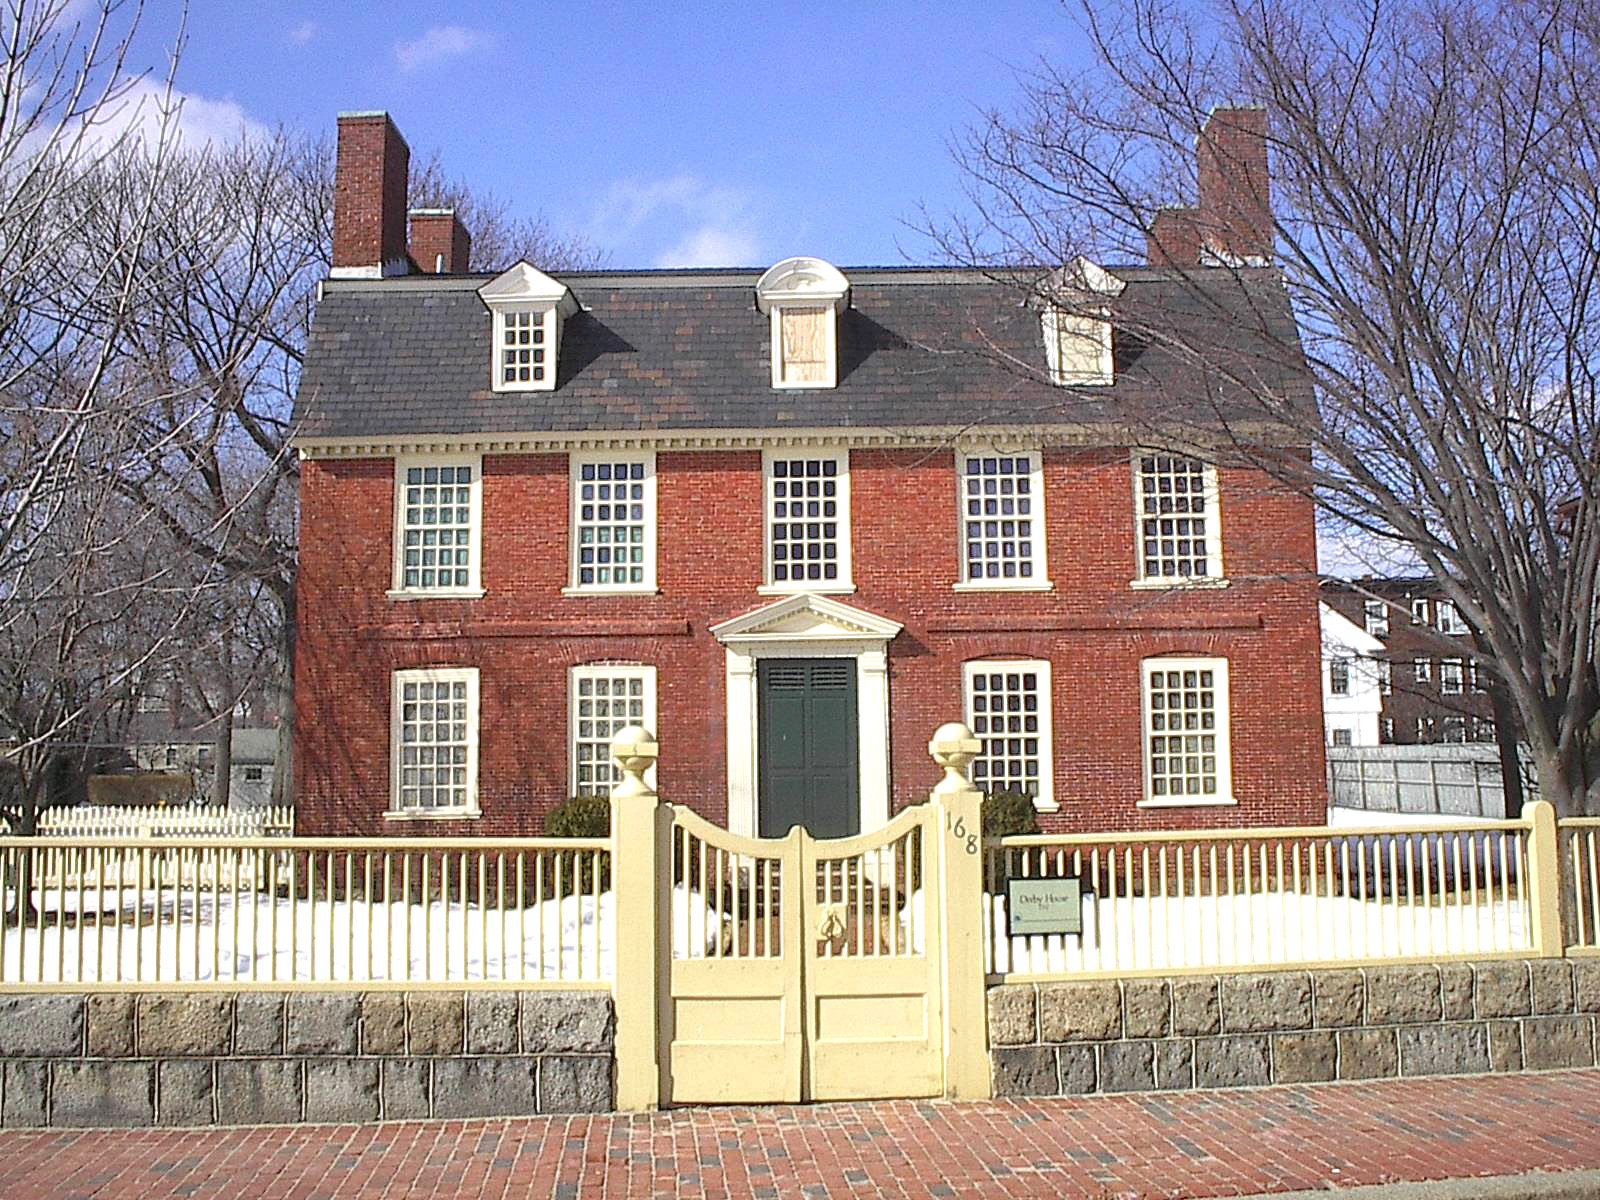 The Derby House Was Built In 1762 By Richard For His Son Elias Haskett Americas First Millionaire Georgian Style Is Oldest